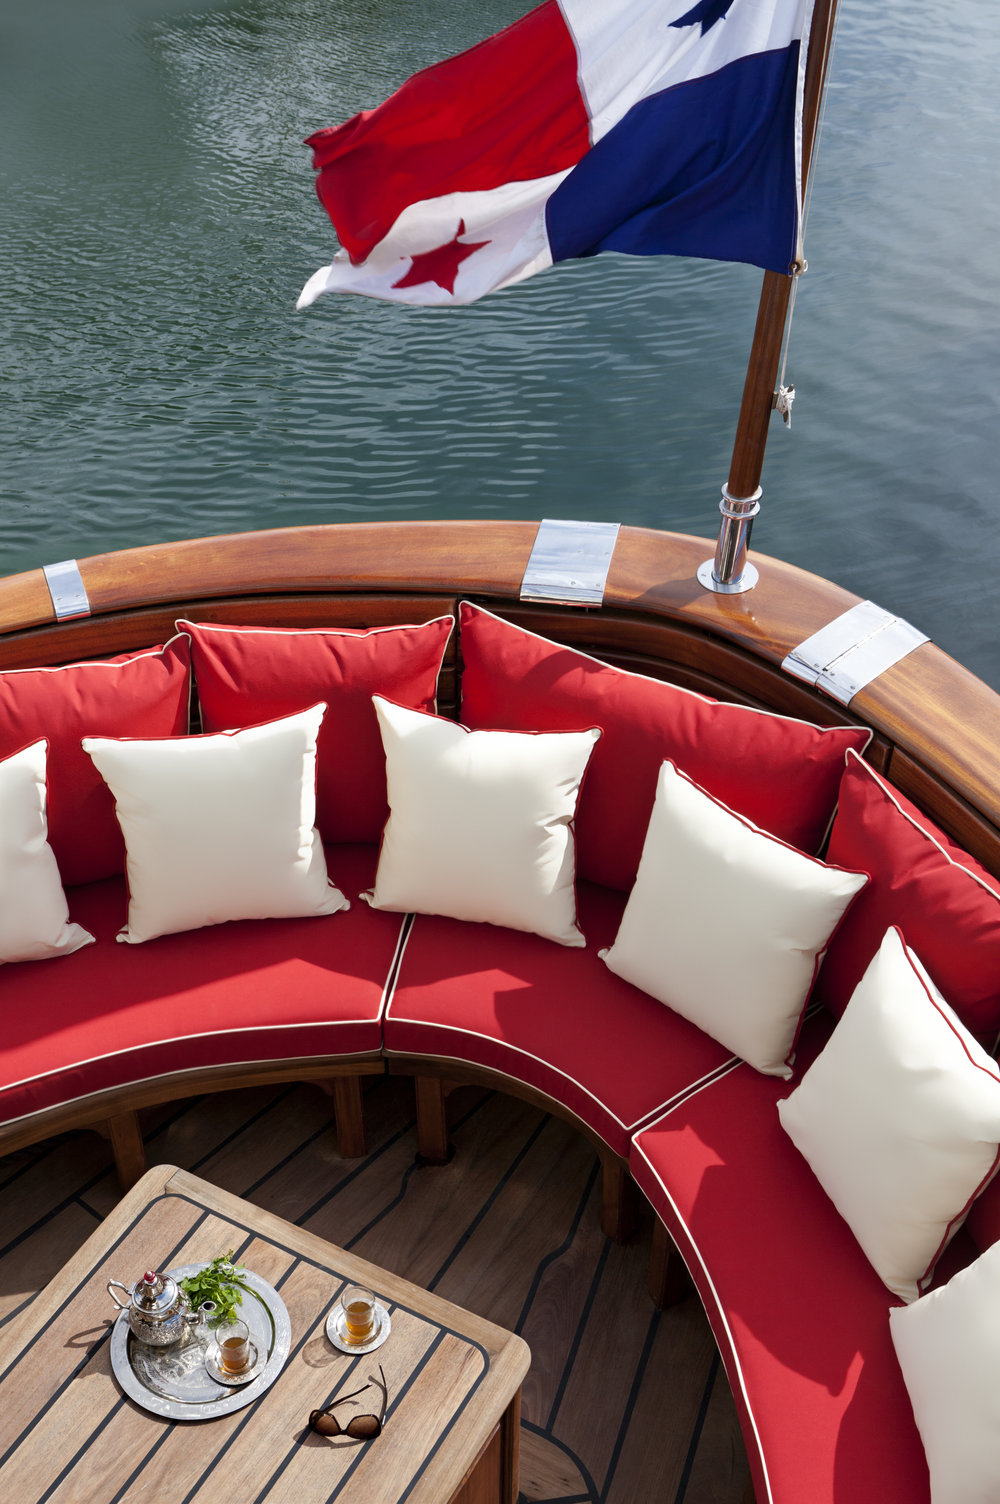 La Sultana Yacht - Flag and sitting area.jpg